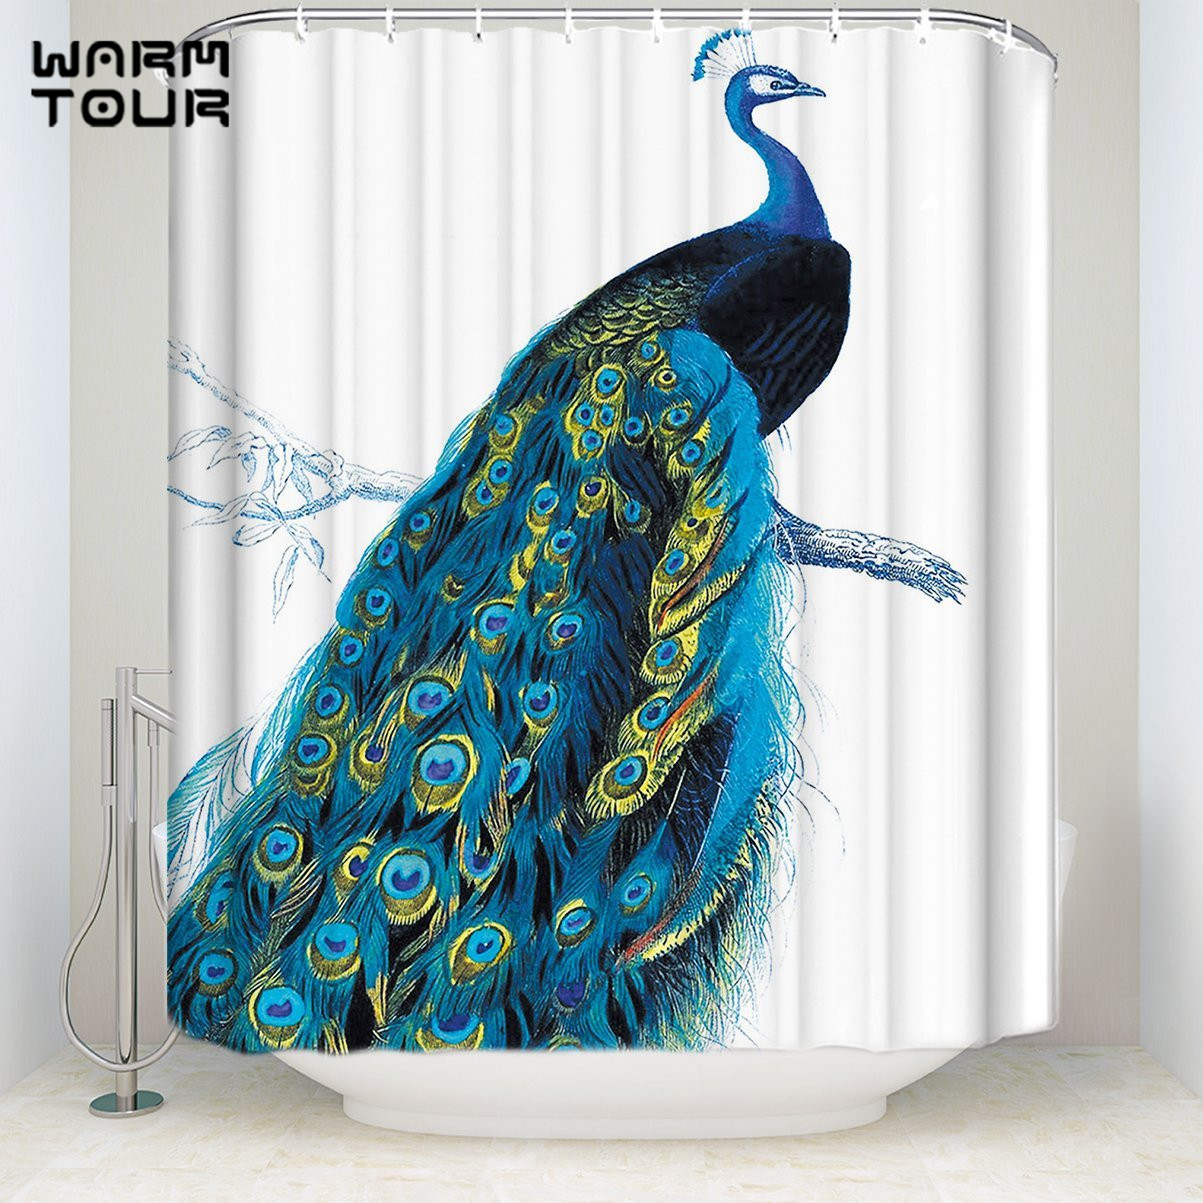 Us 17 38 25 Off Warmtour Shower Curtain Extra Long Fabric Bath Shower Curtains Proud Peacock Welcome Mildew Resistant Bathroom Decor Sets In Shower